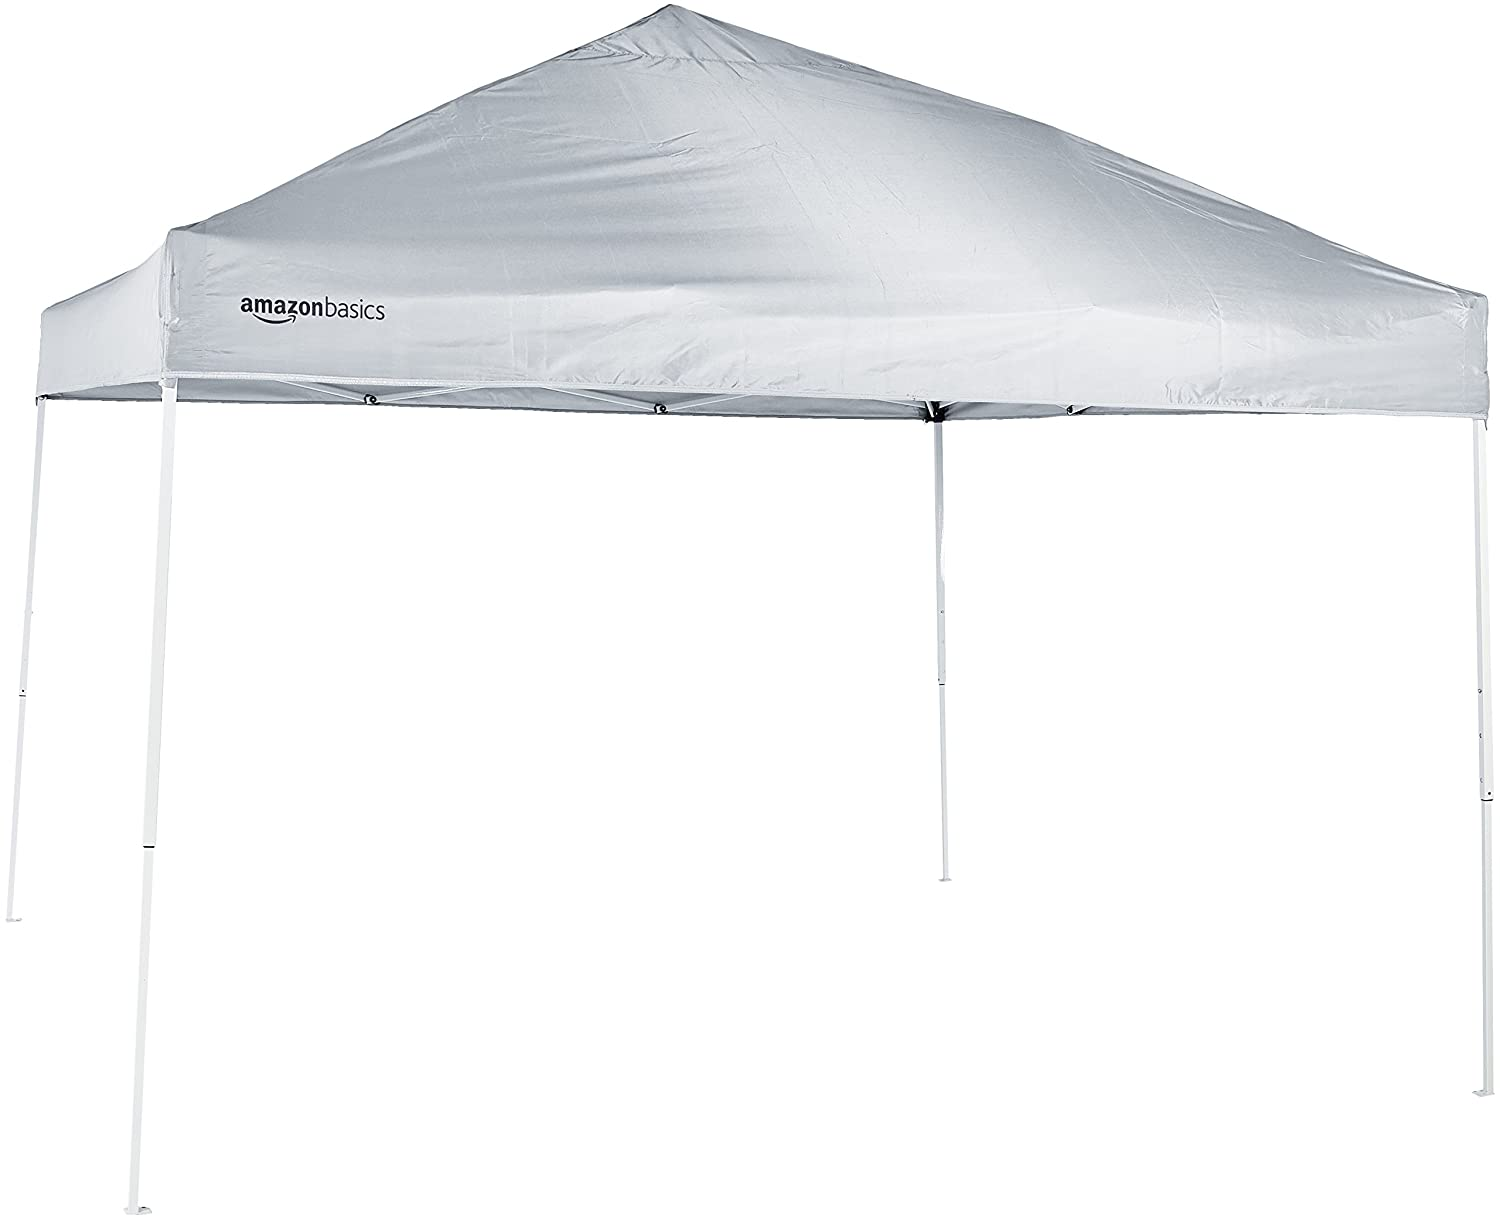 on sale bdc63 ed839 AmazonBasics Pop-Up Canopy Tent - 10' x 10', White